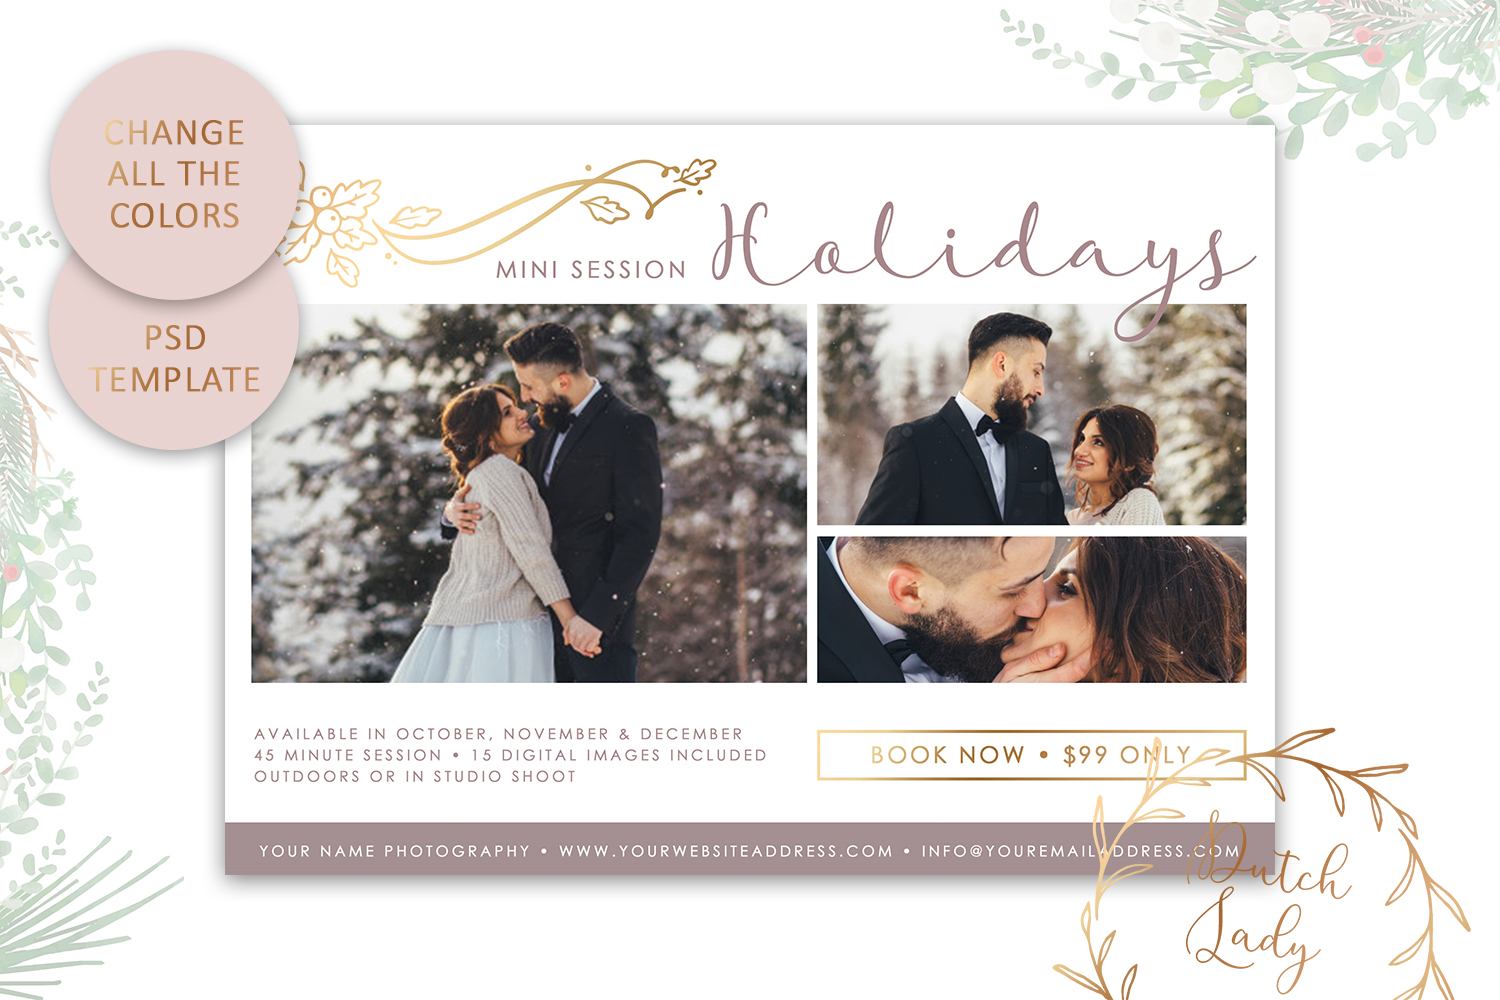 PSD Photo Mini Session Card Template - Design #21 example image 4